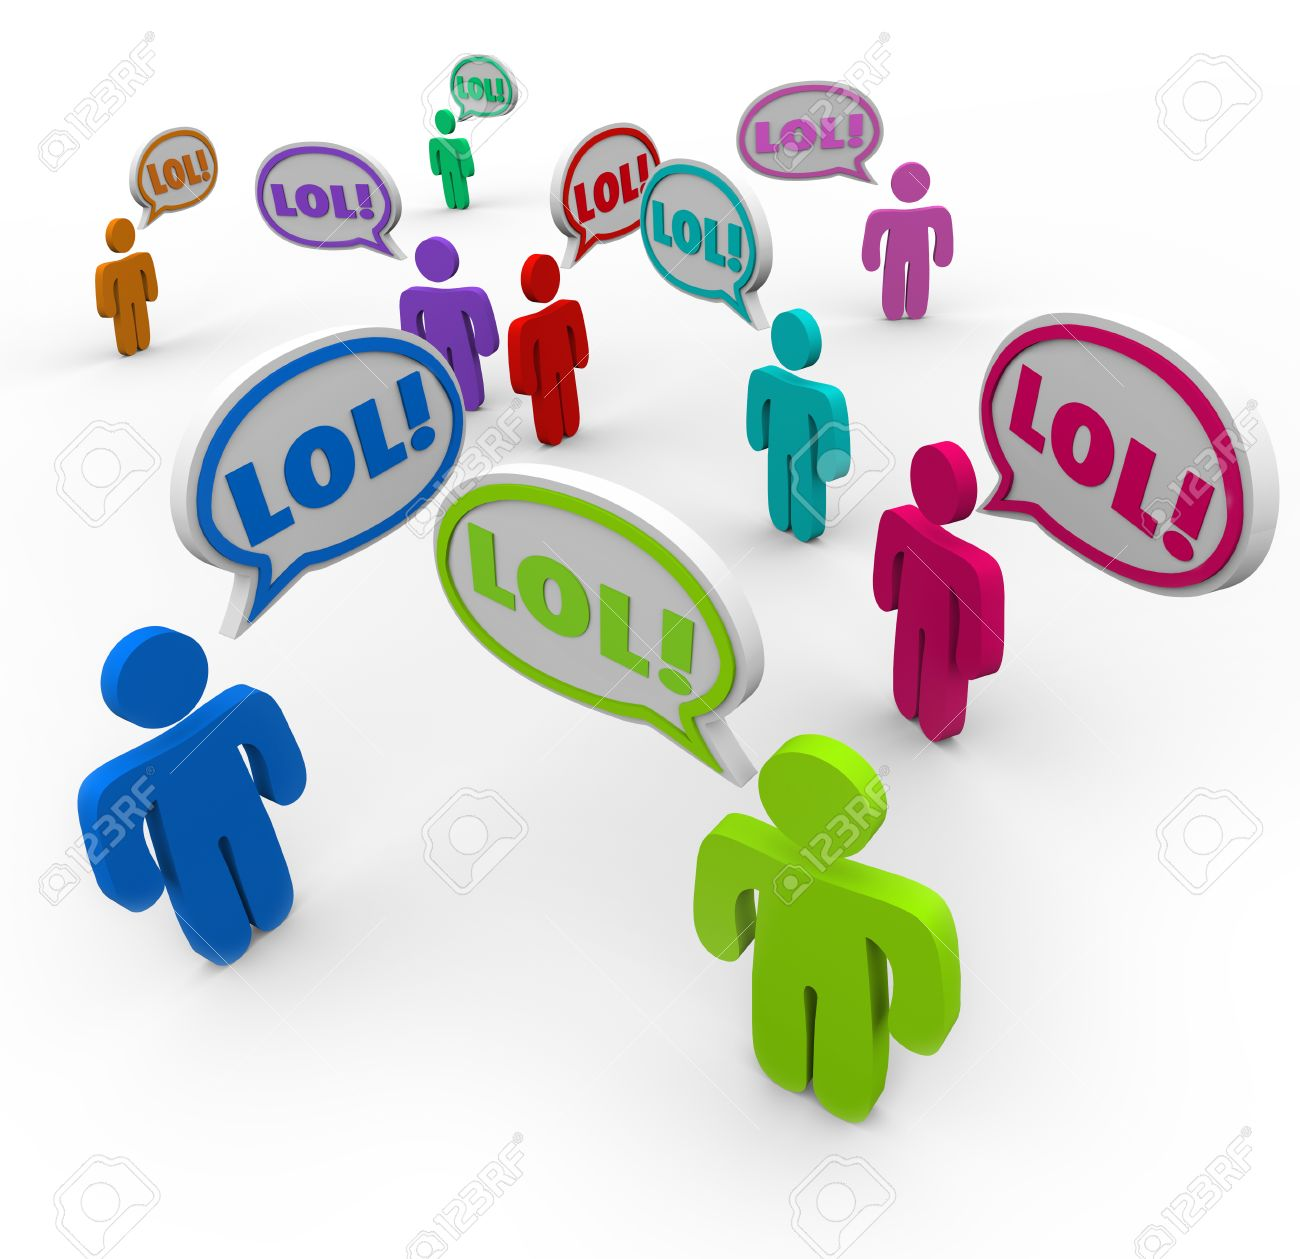 The word LOL in speech bubbles from people laughing out loud to illustrate an audience or crowd enjoying a joke or online entertainment Stock Photo - 23325799